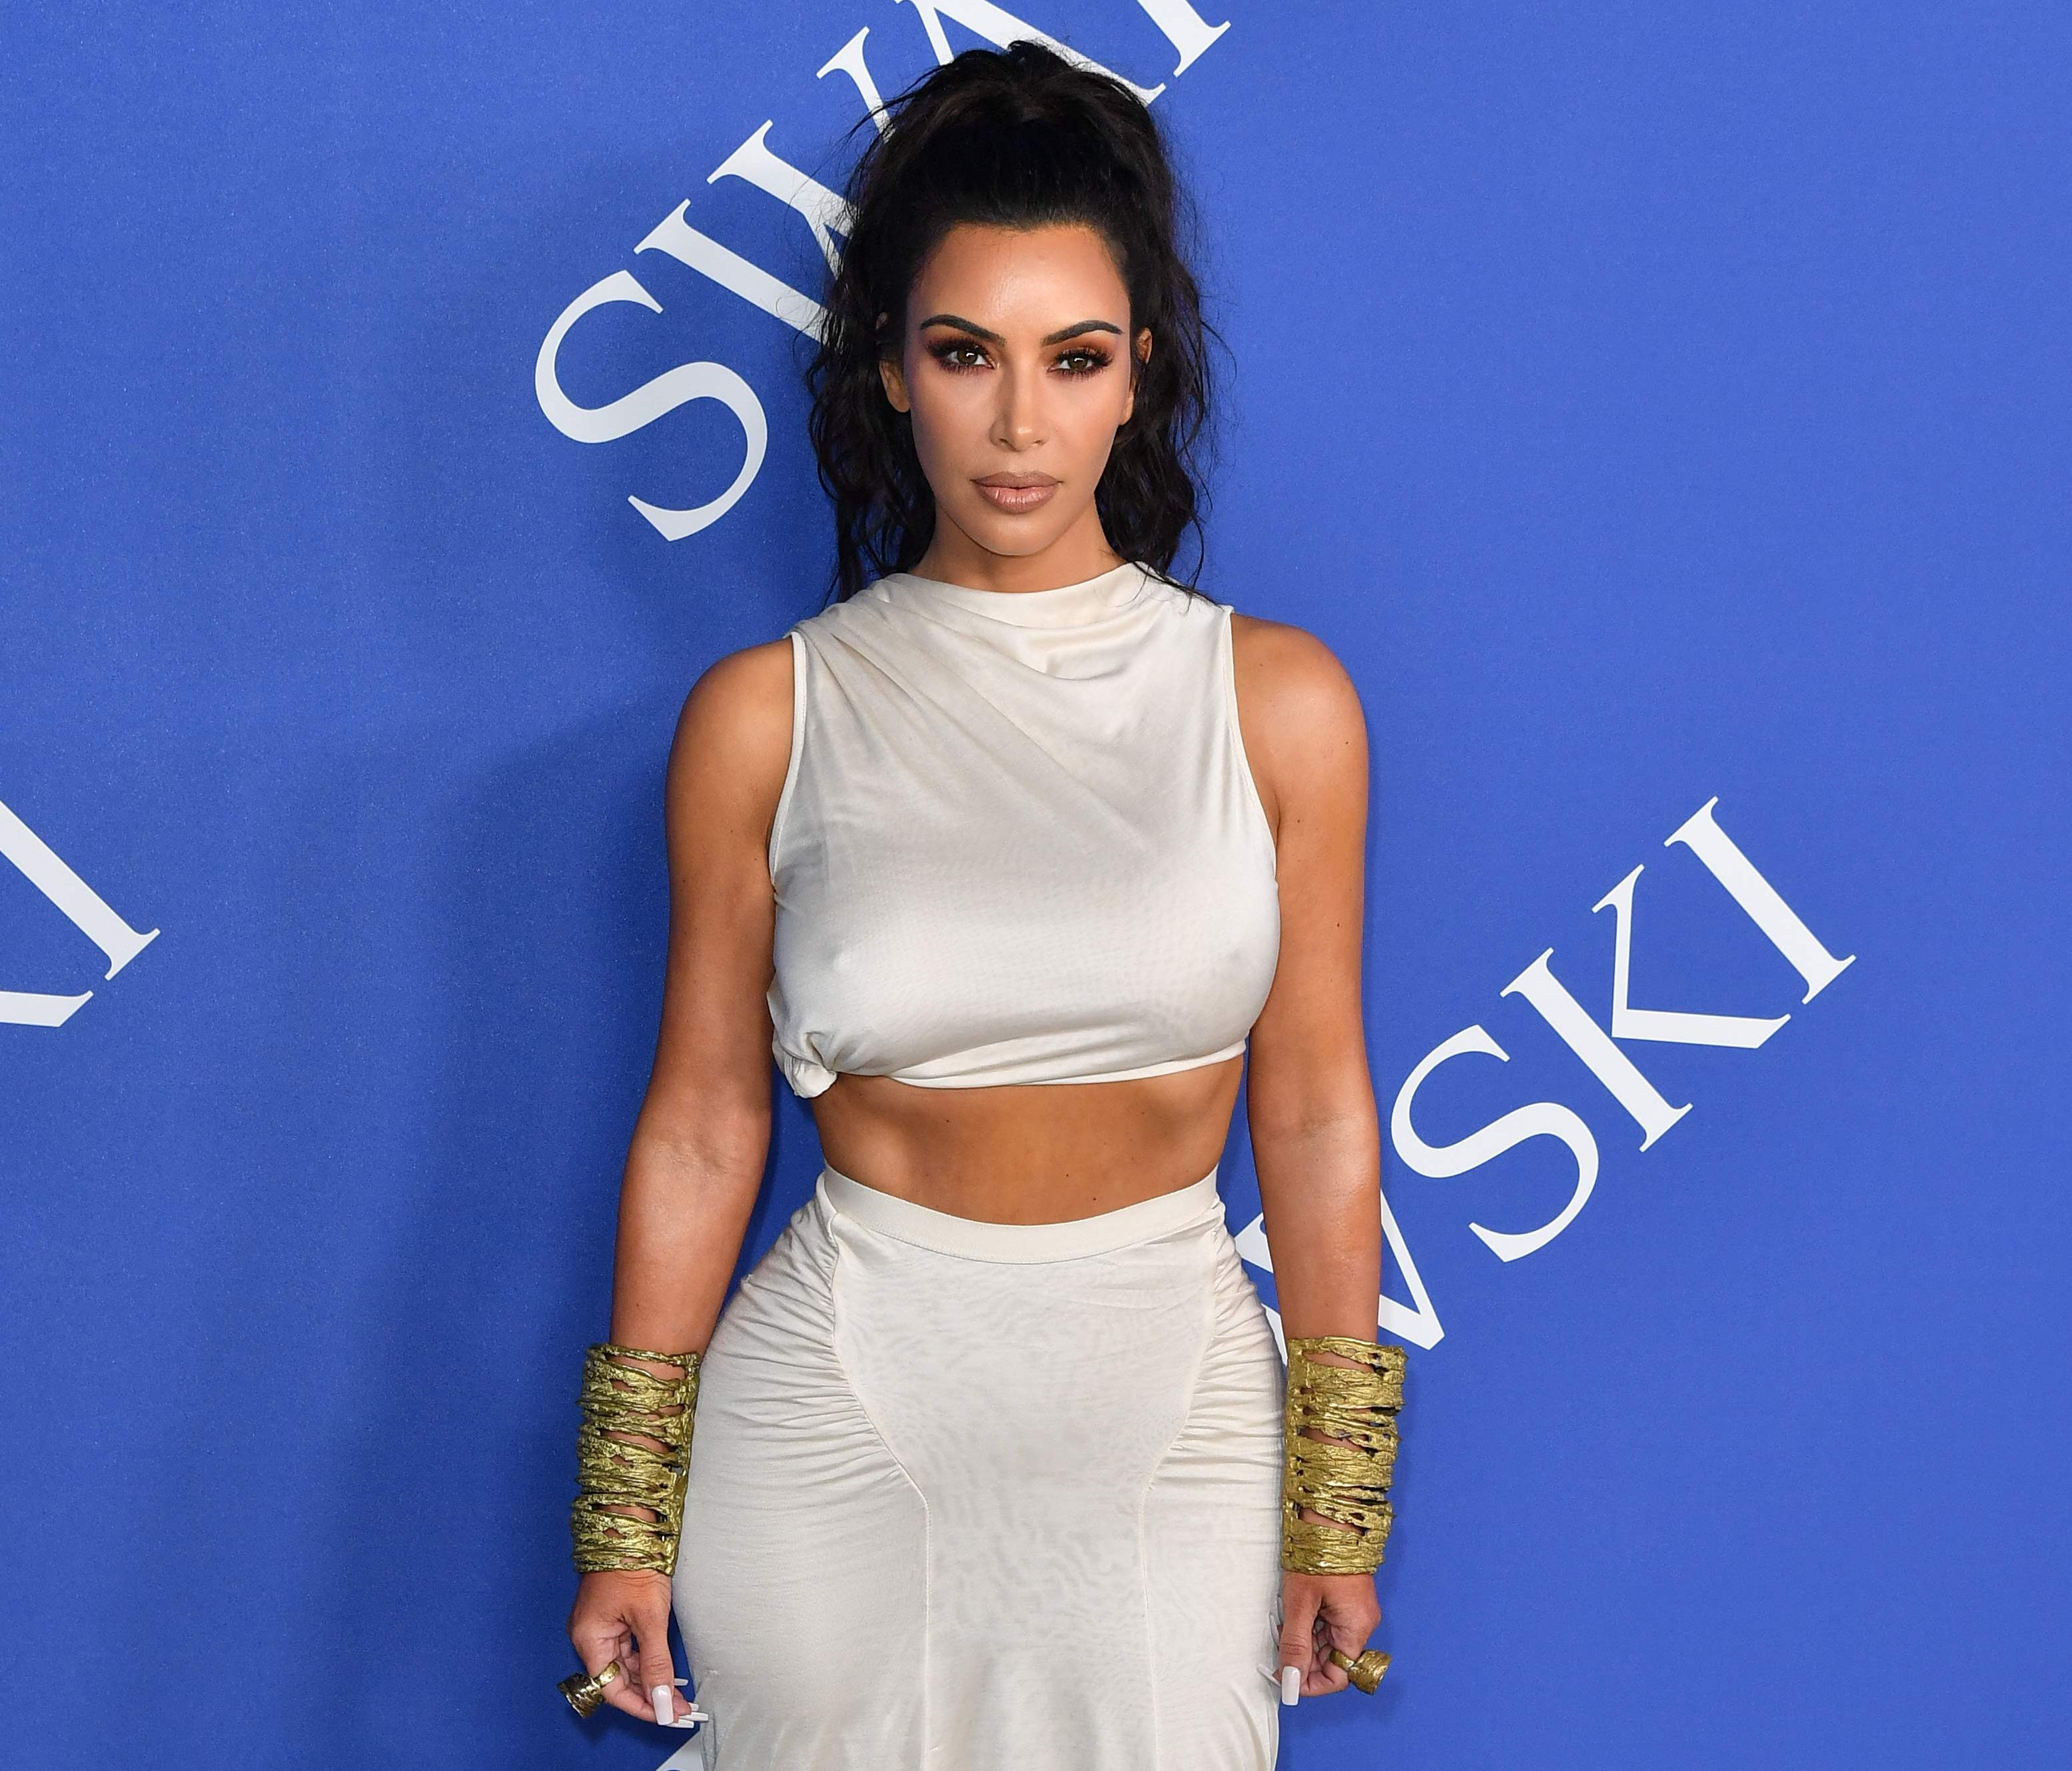 Kim Kardashian West arrived in a two-piece white ensemble for the event honoring the biggest names in fashion.